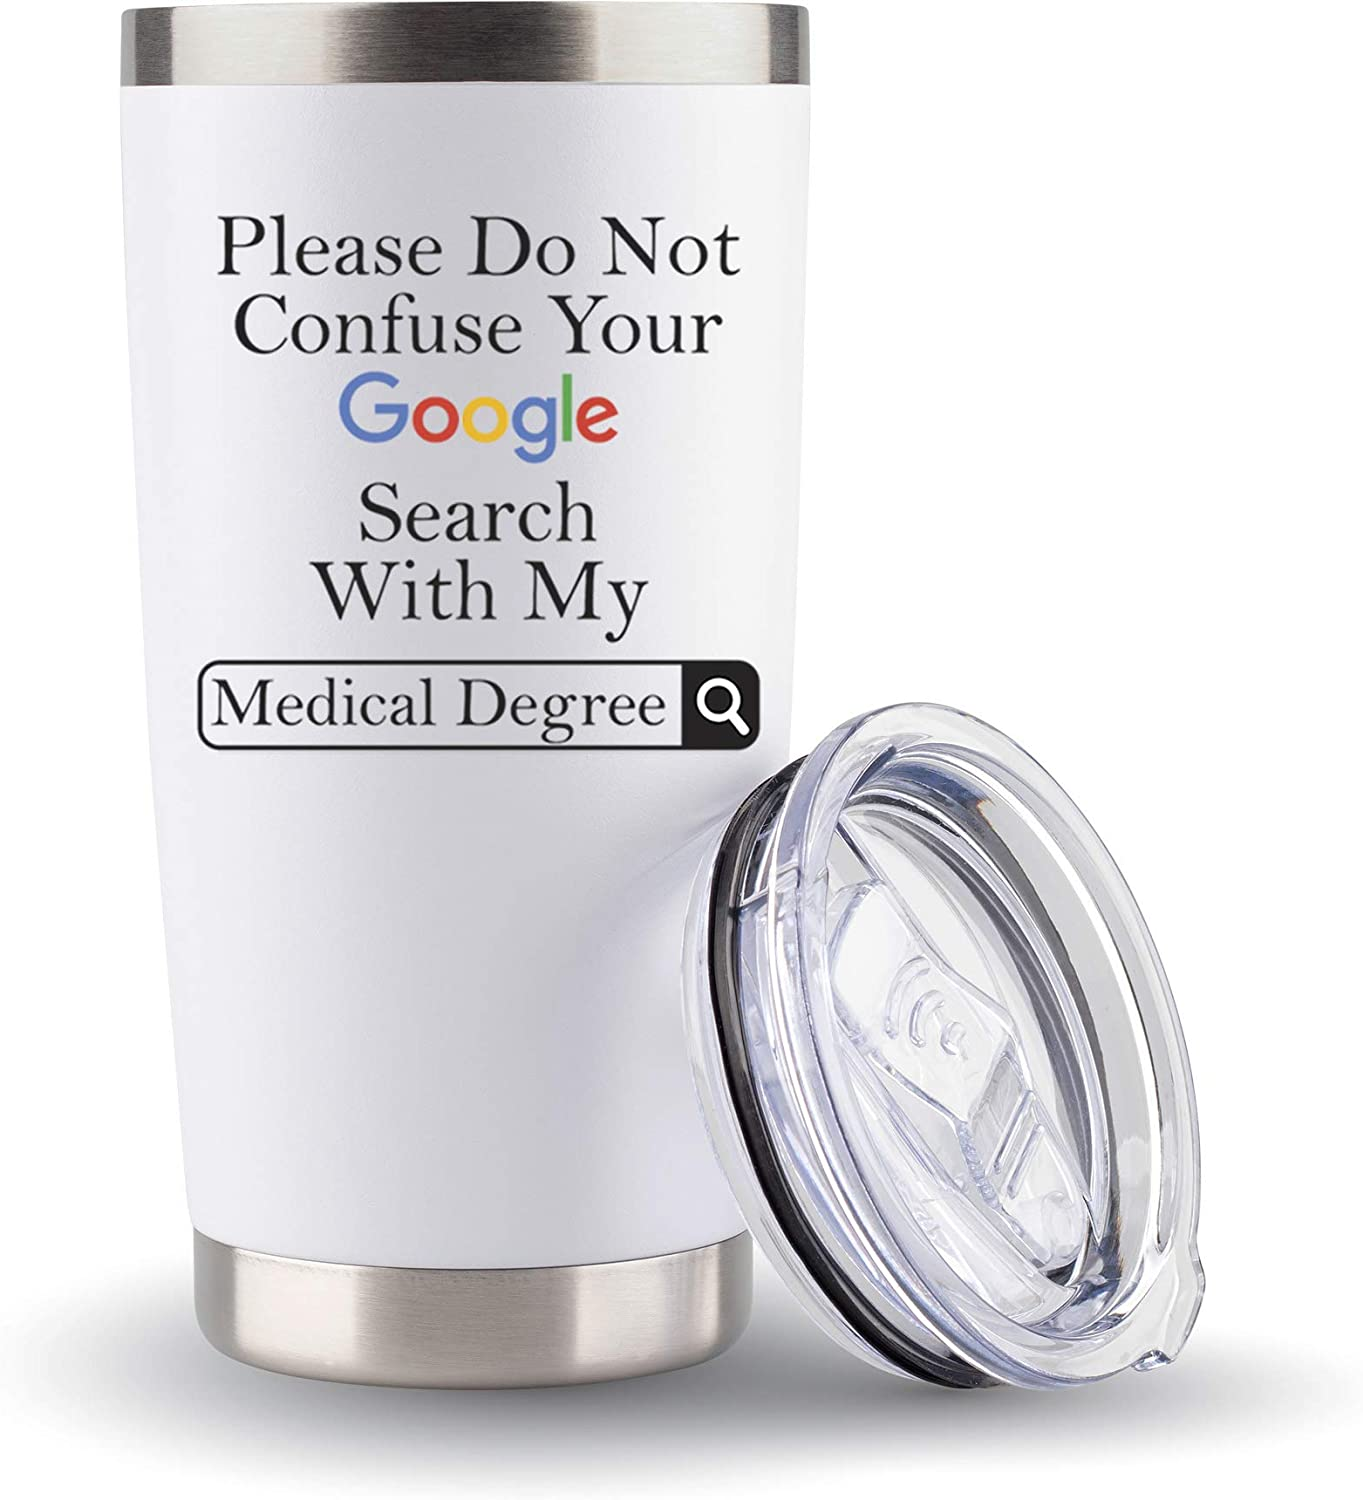 "Gifts for Doctors -""Google Search Medical Degree"" - Doctor Coffee Mug/Travel 20oz - Funny Gift Idea for School, Assistant, Graduation, Men, DR, Women, MD"